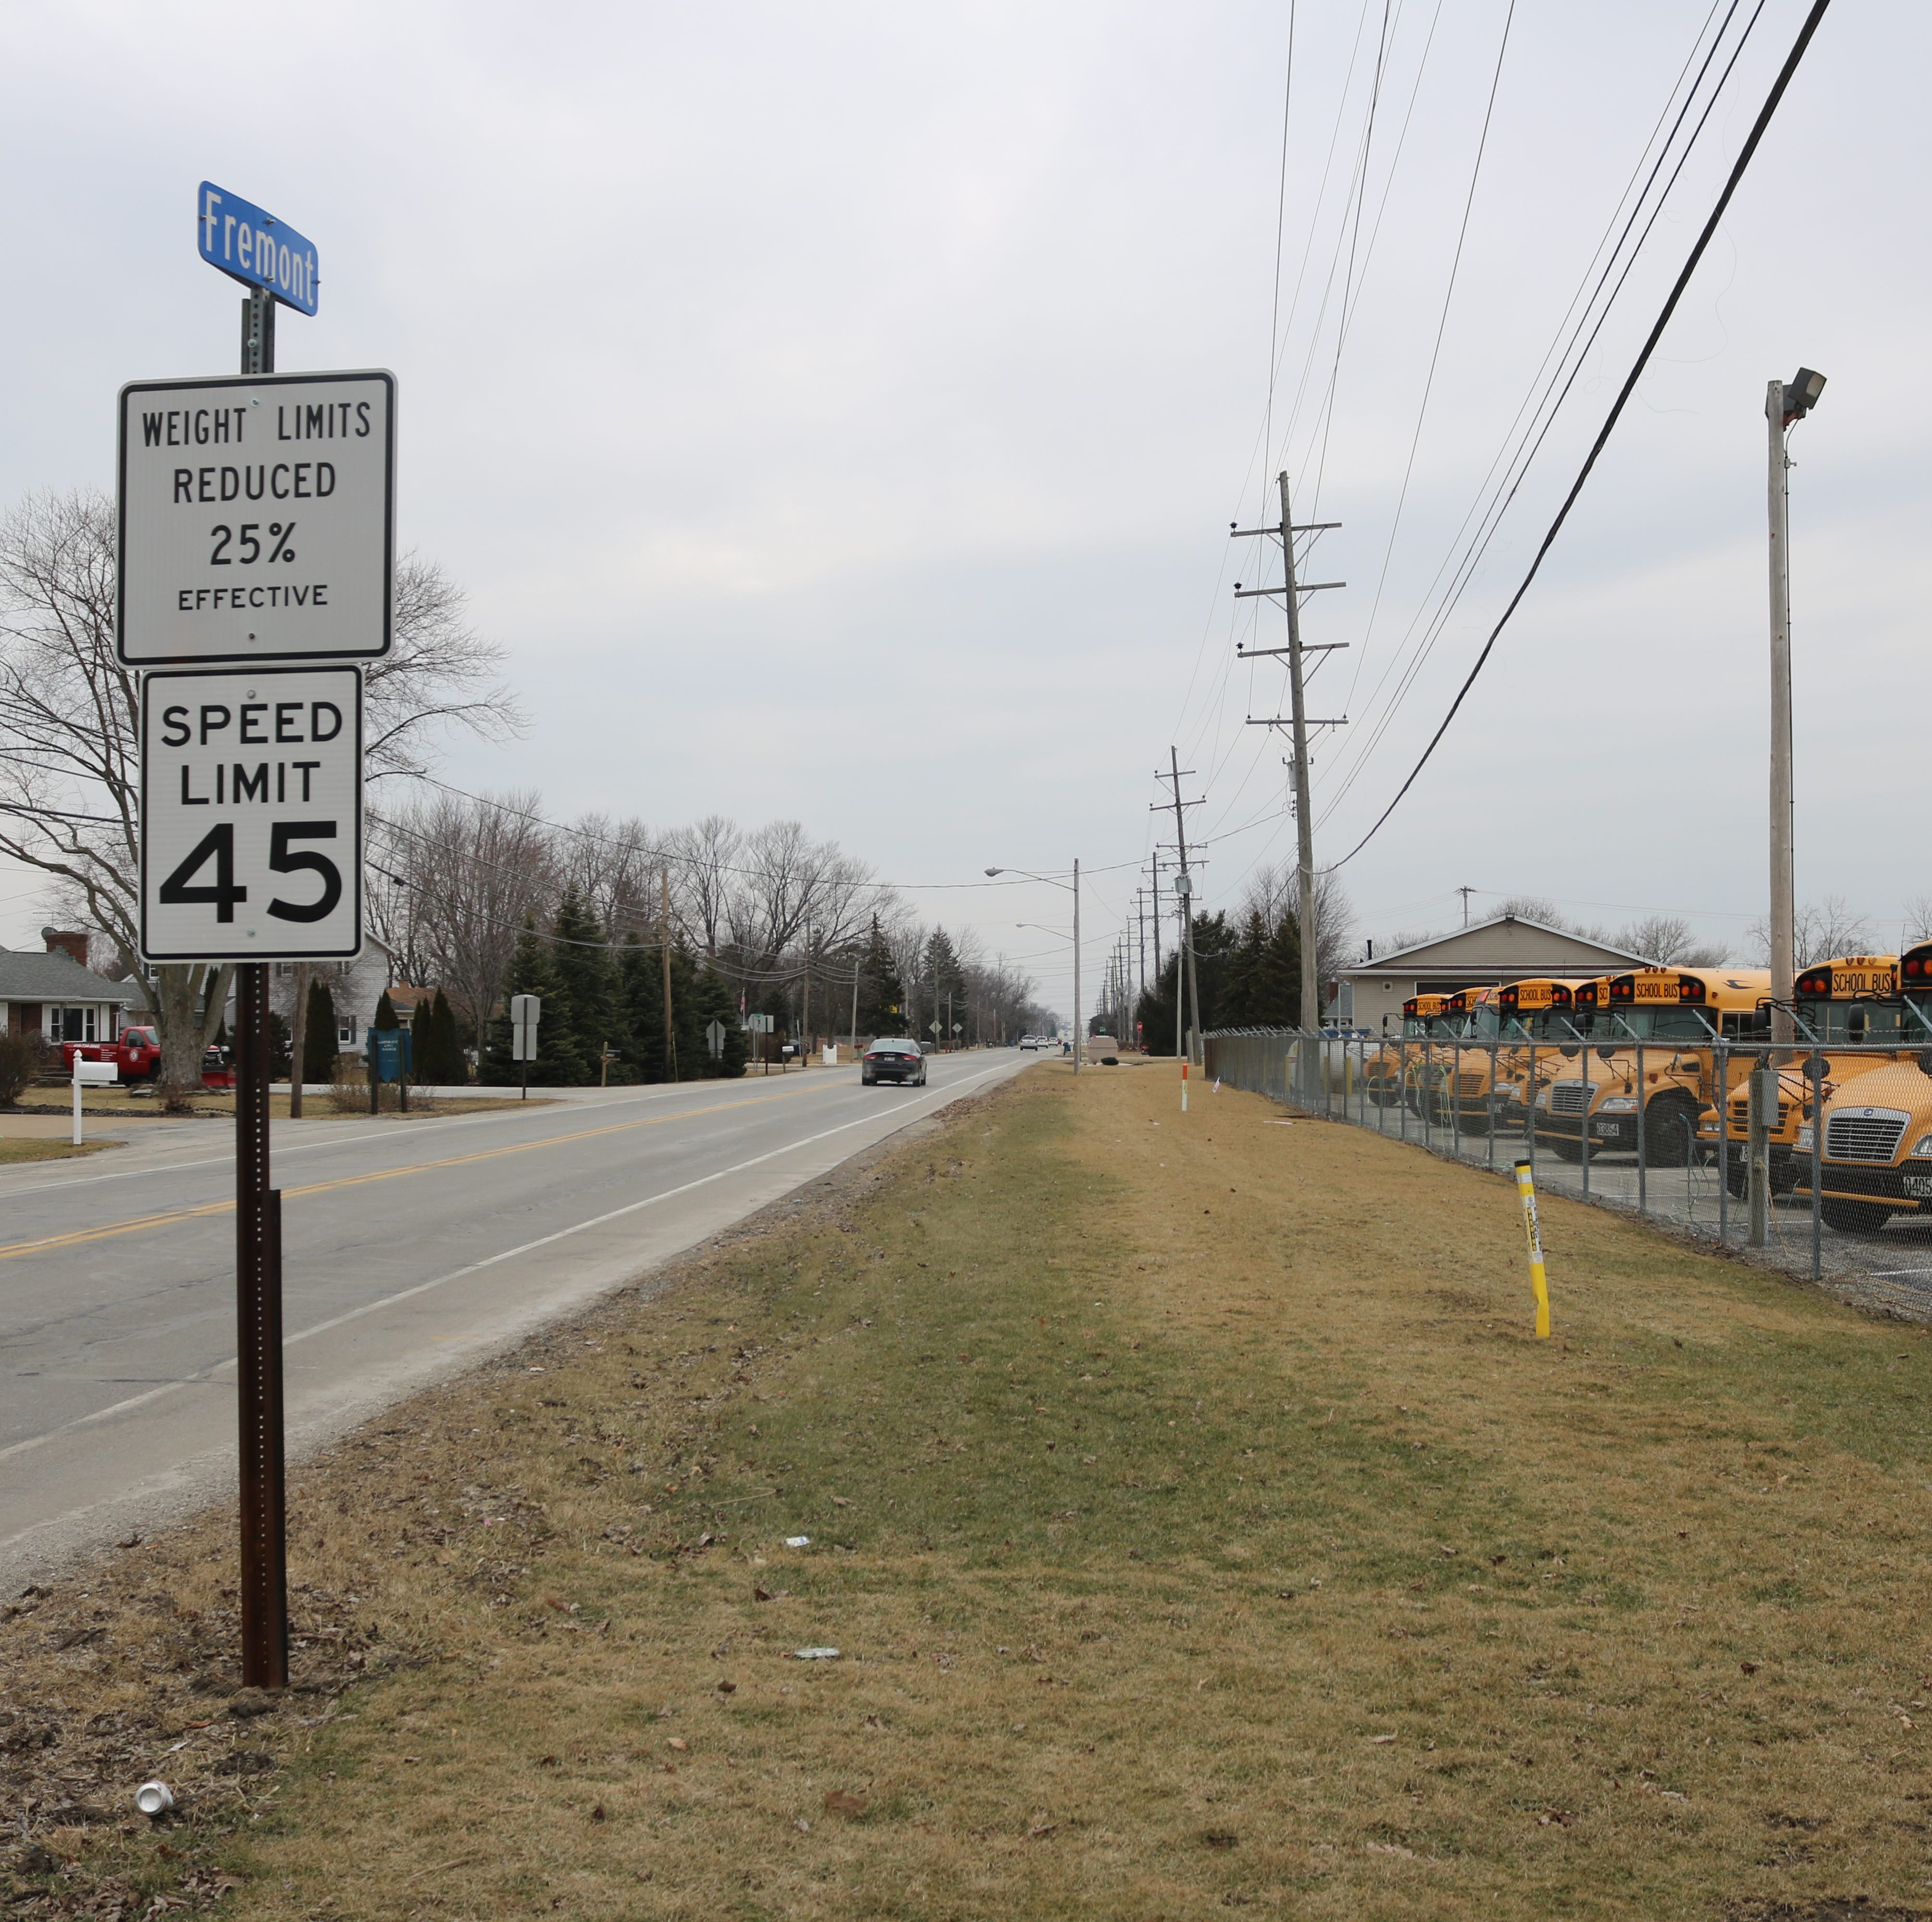 Officials move forward with plan to make walk to school safer for Port Clinton students